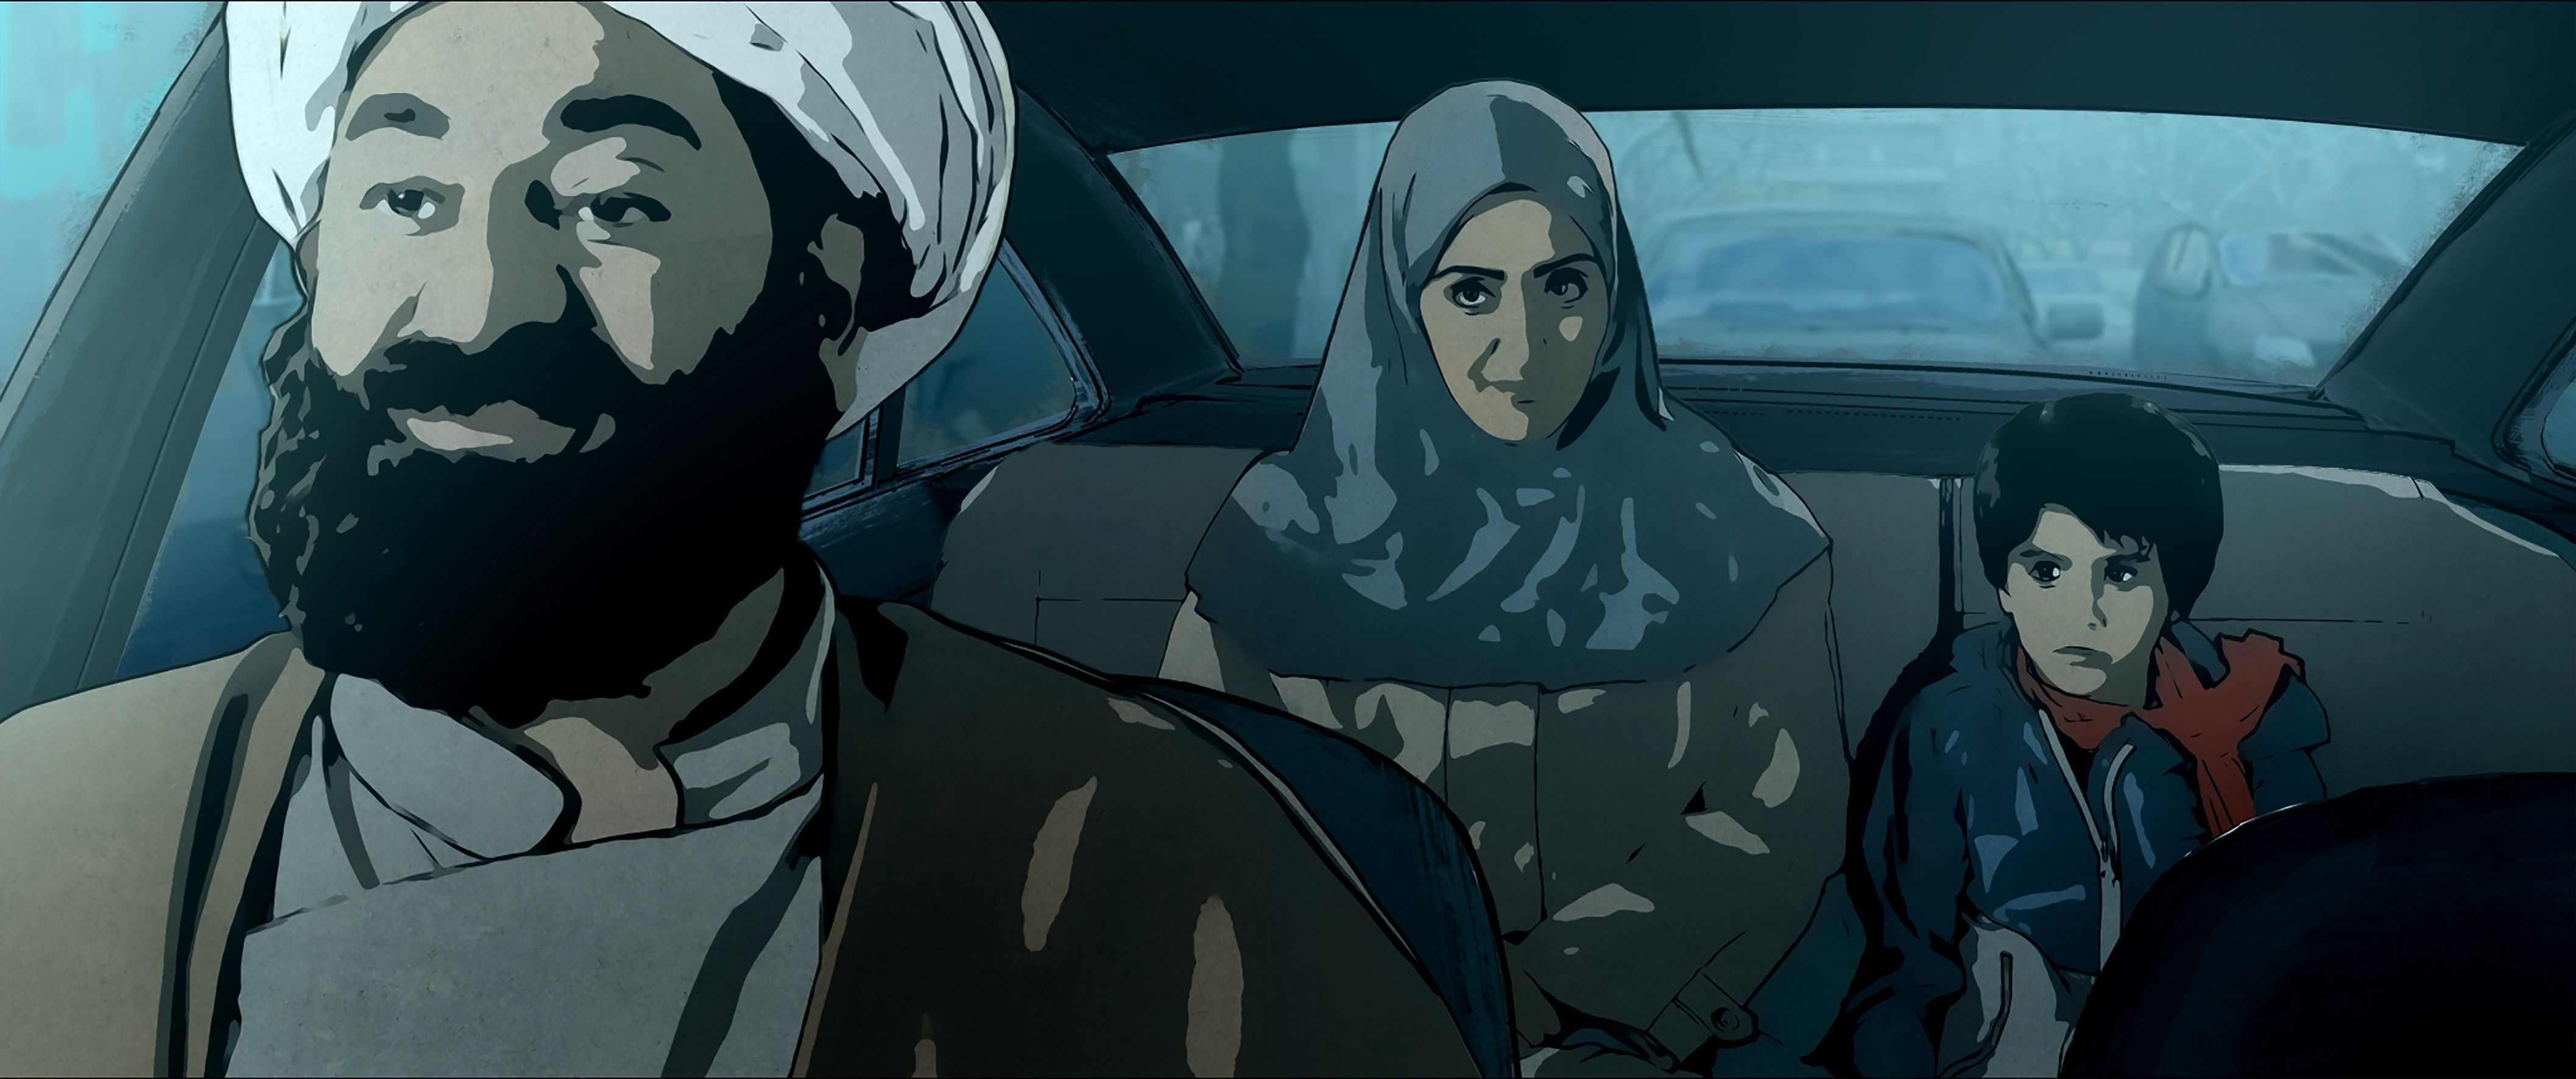 Pari-and-Elias-in-a-Car-with-the-Judge